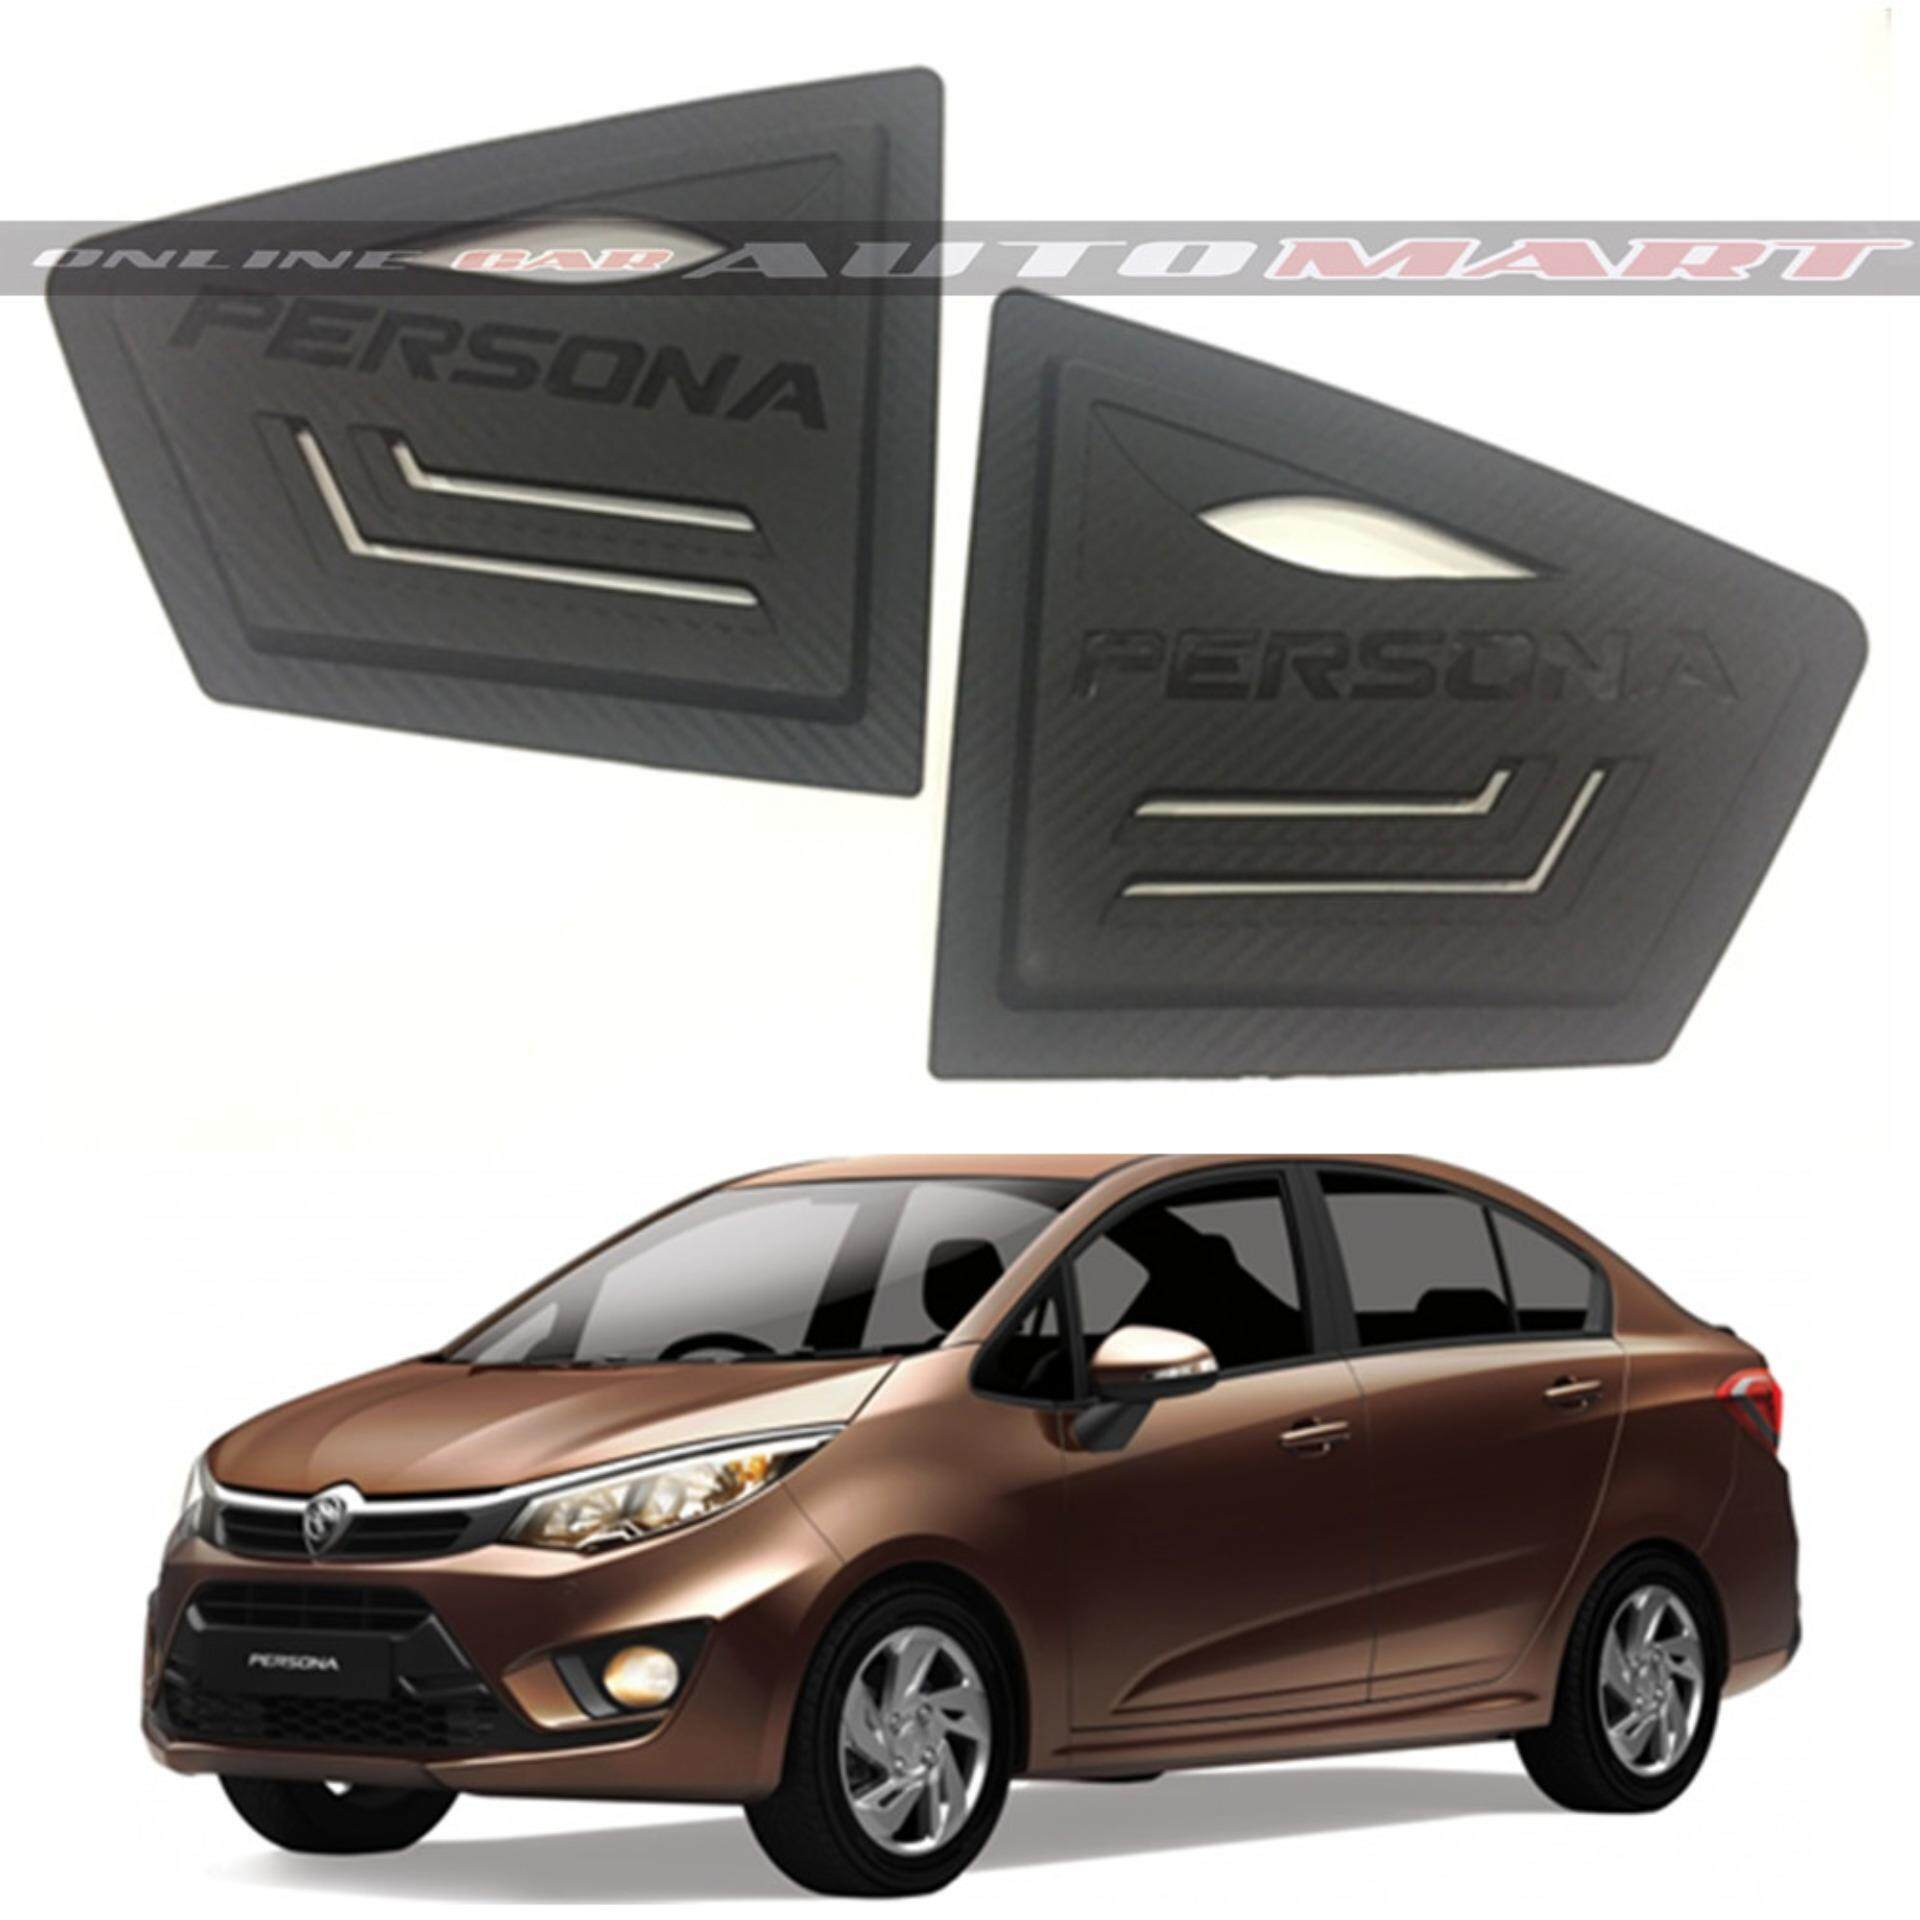 Proton Persona 2016 CARBON Rear Side Window Cover (1 Pair)